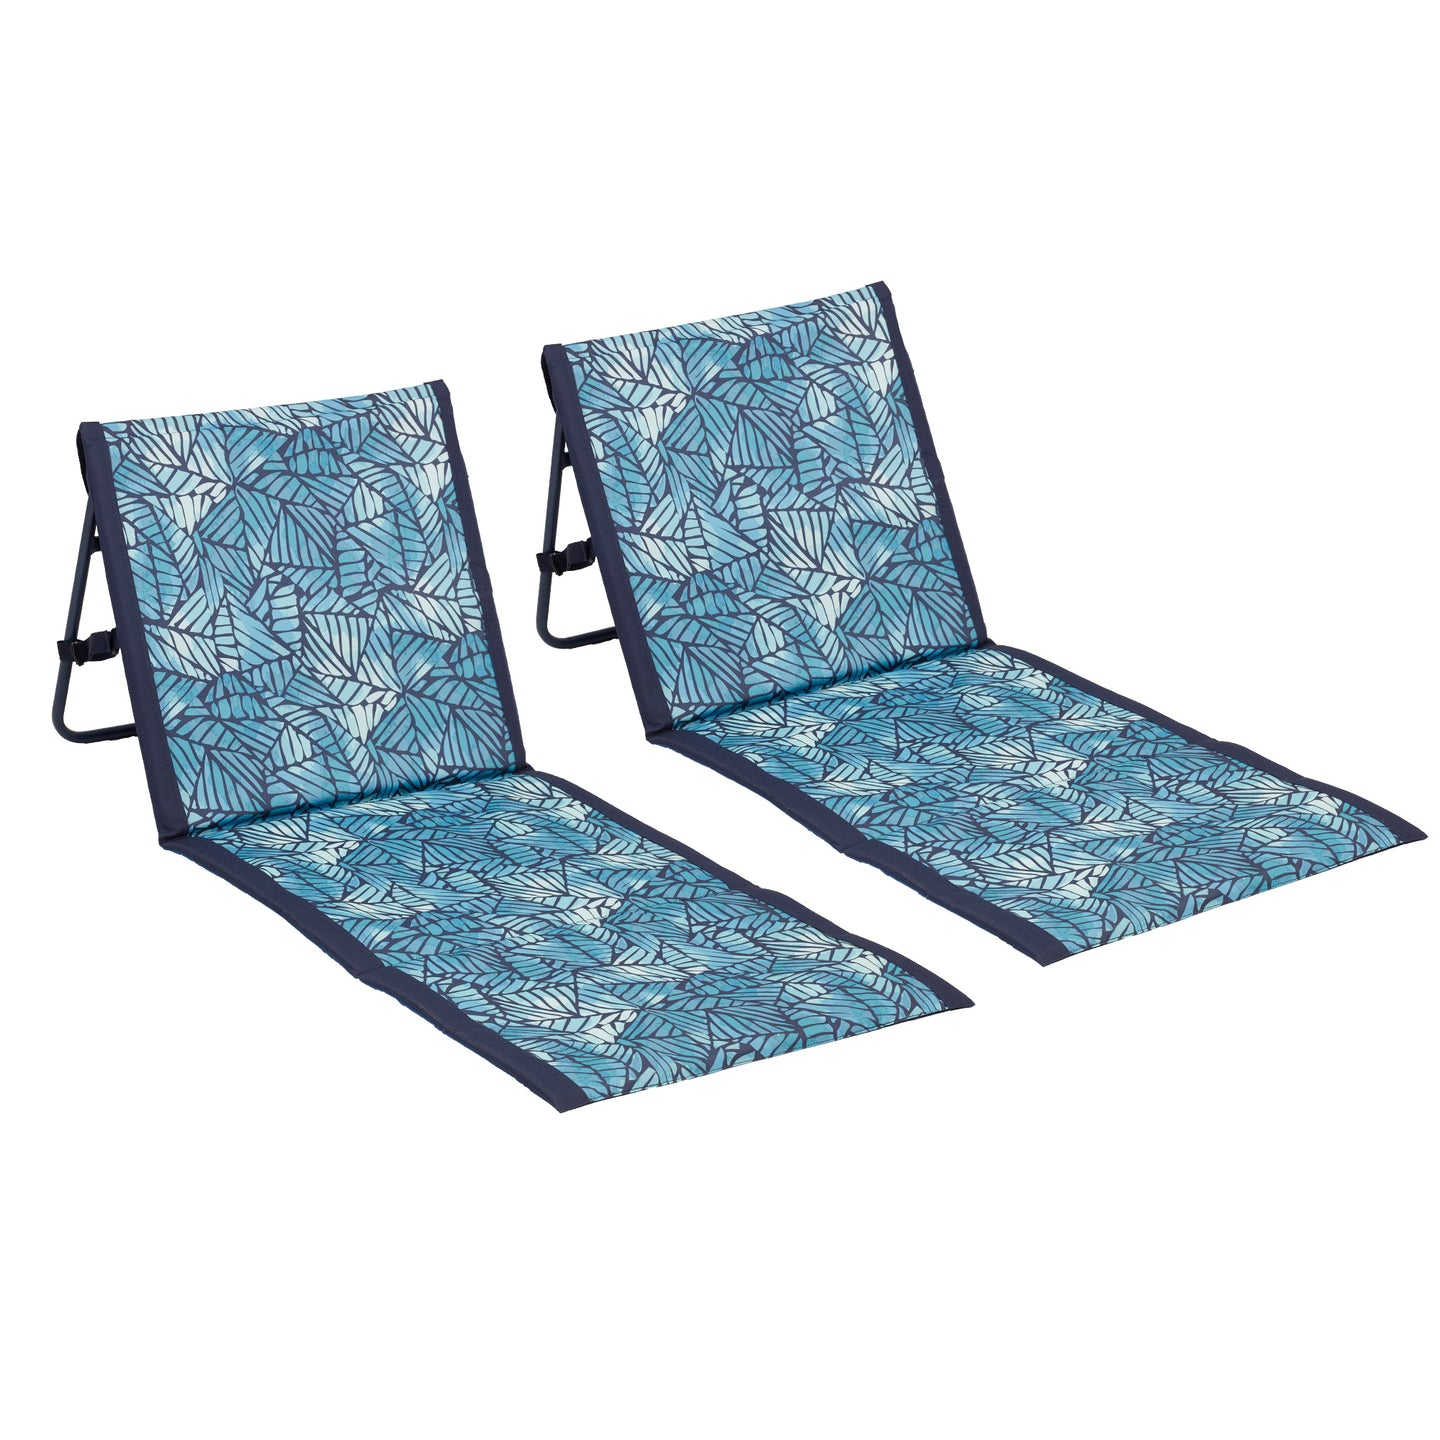 Lightspeed loungers come in a two-pack and feature an abstract leaves print in a blue colors with navy trim.